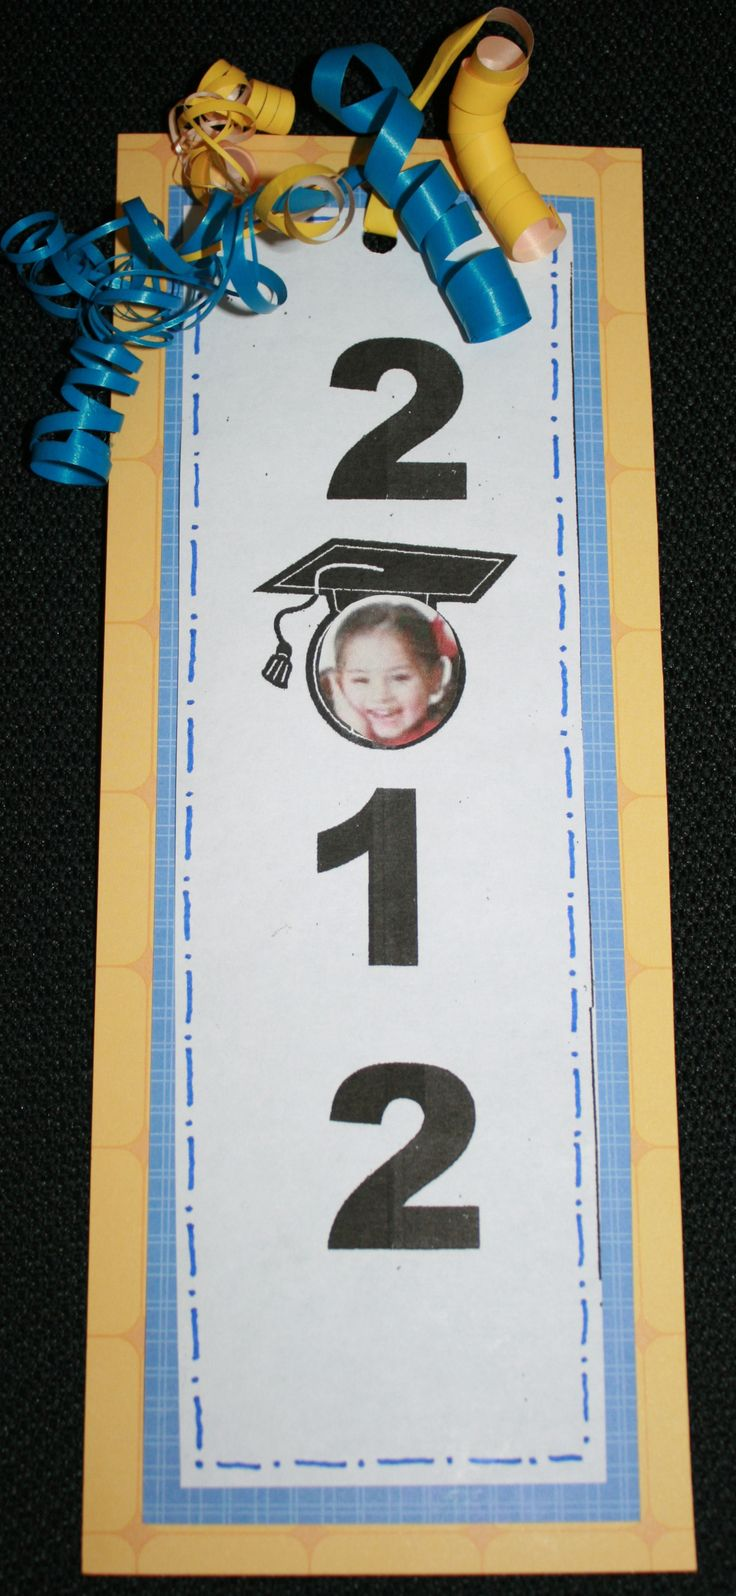 graduation bookmark, graduation certificates, kindergarten graduation certificates, preschool graduation certificates, preschool and kindergarten graduation ideas, graduation activities, end of the school year activities, ind of the school year ideas, end of the school year certificates, award certificates,